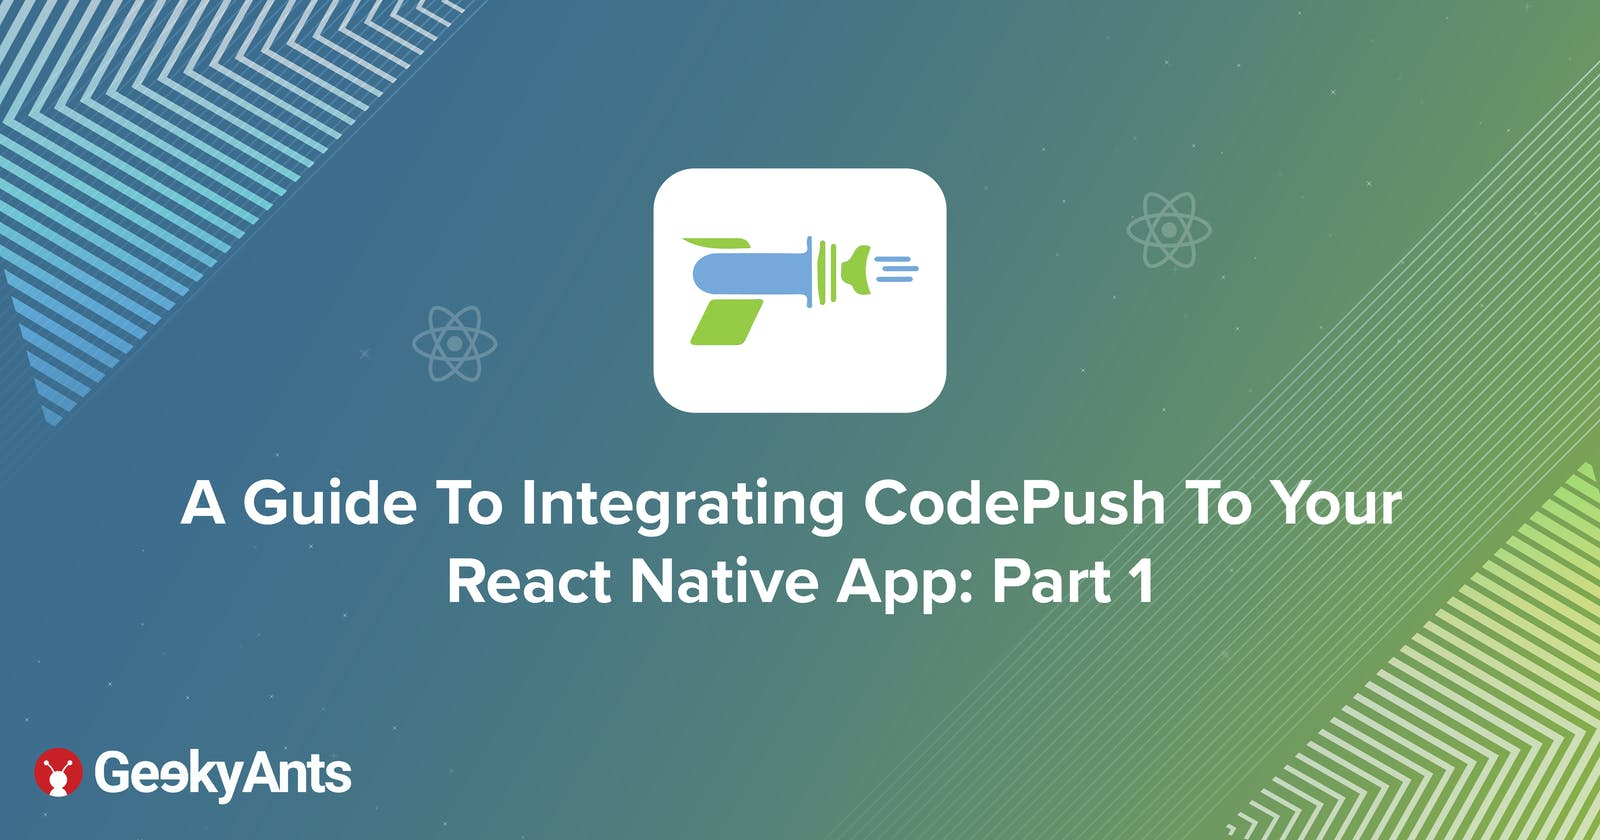 A Guide To Integrating CodePush To Your React Native App: Part 1